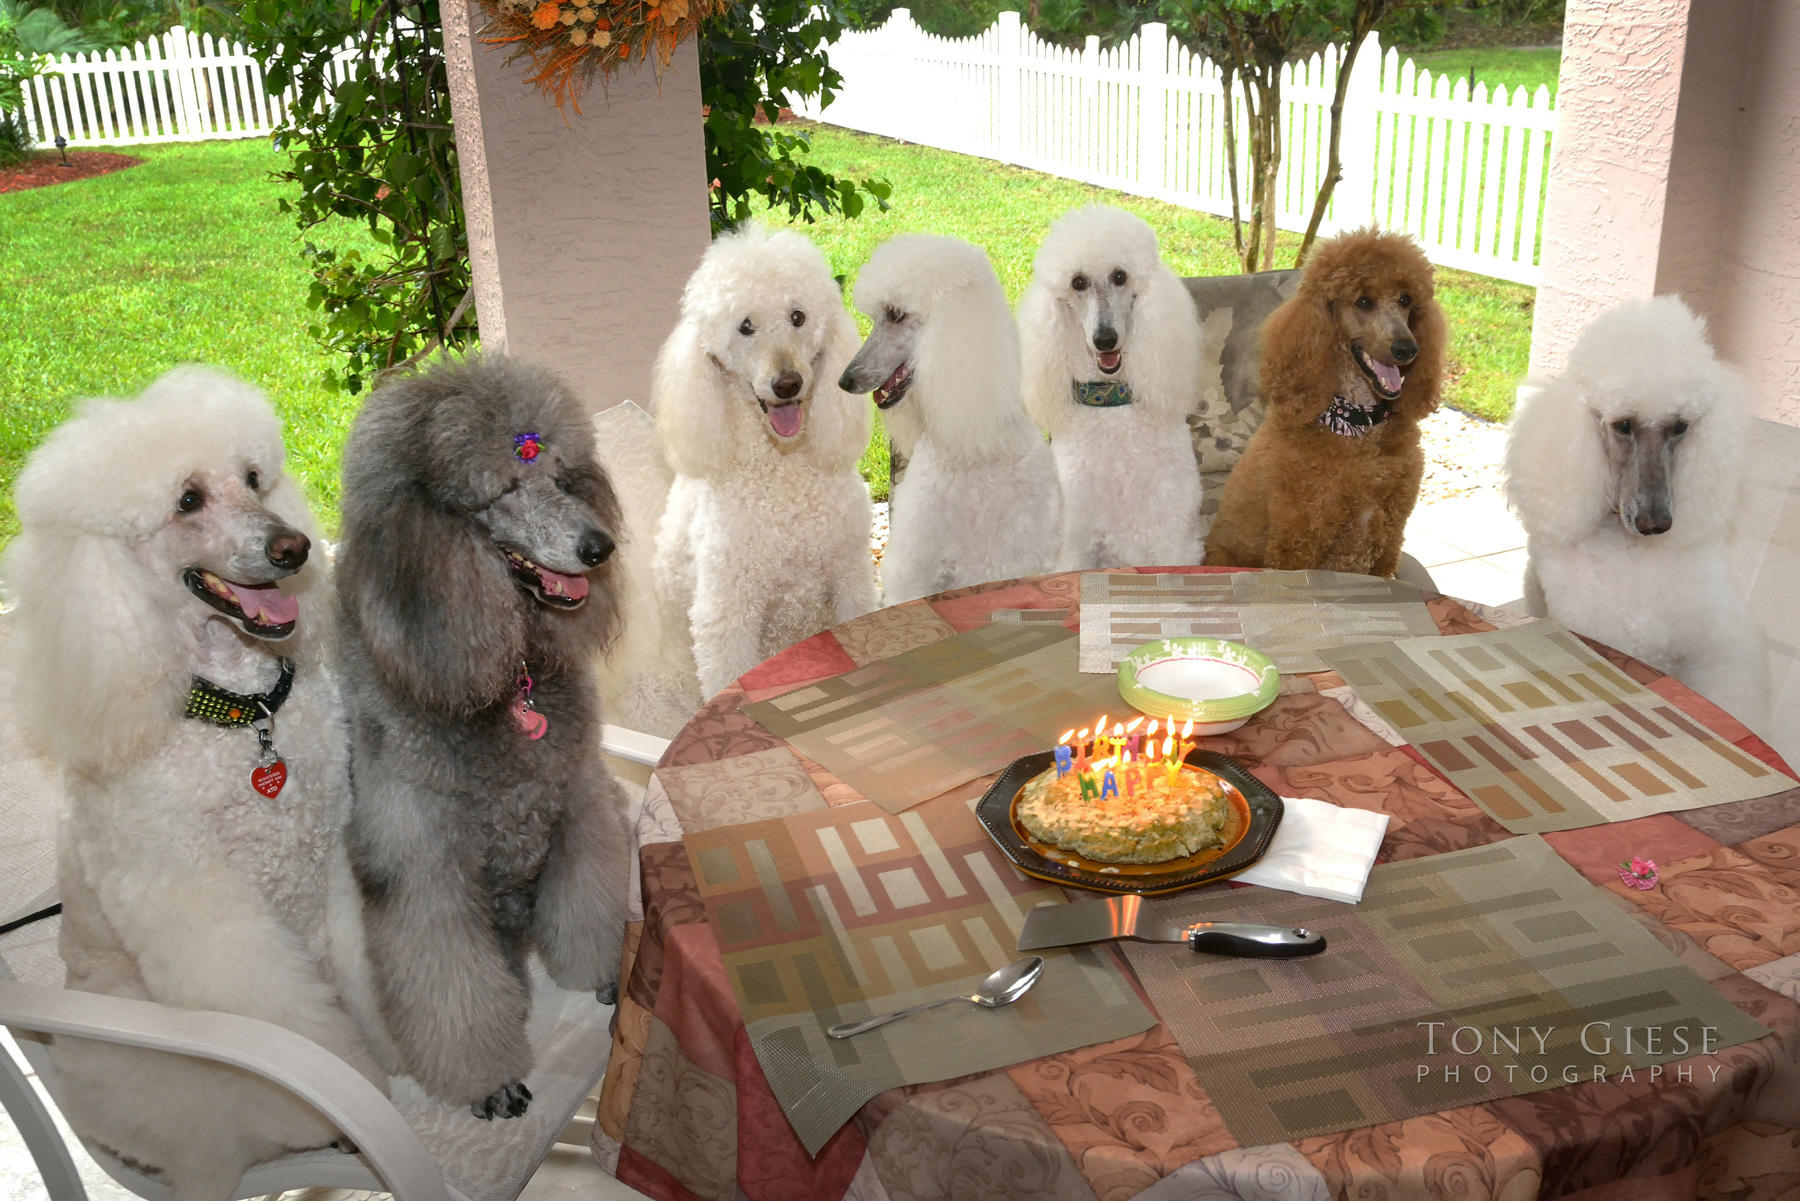 All standard poodles birthday party with homemade cake.